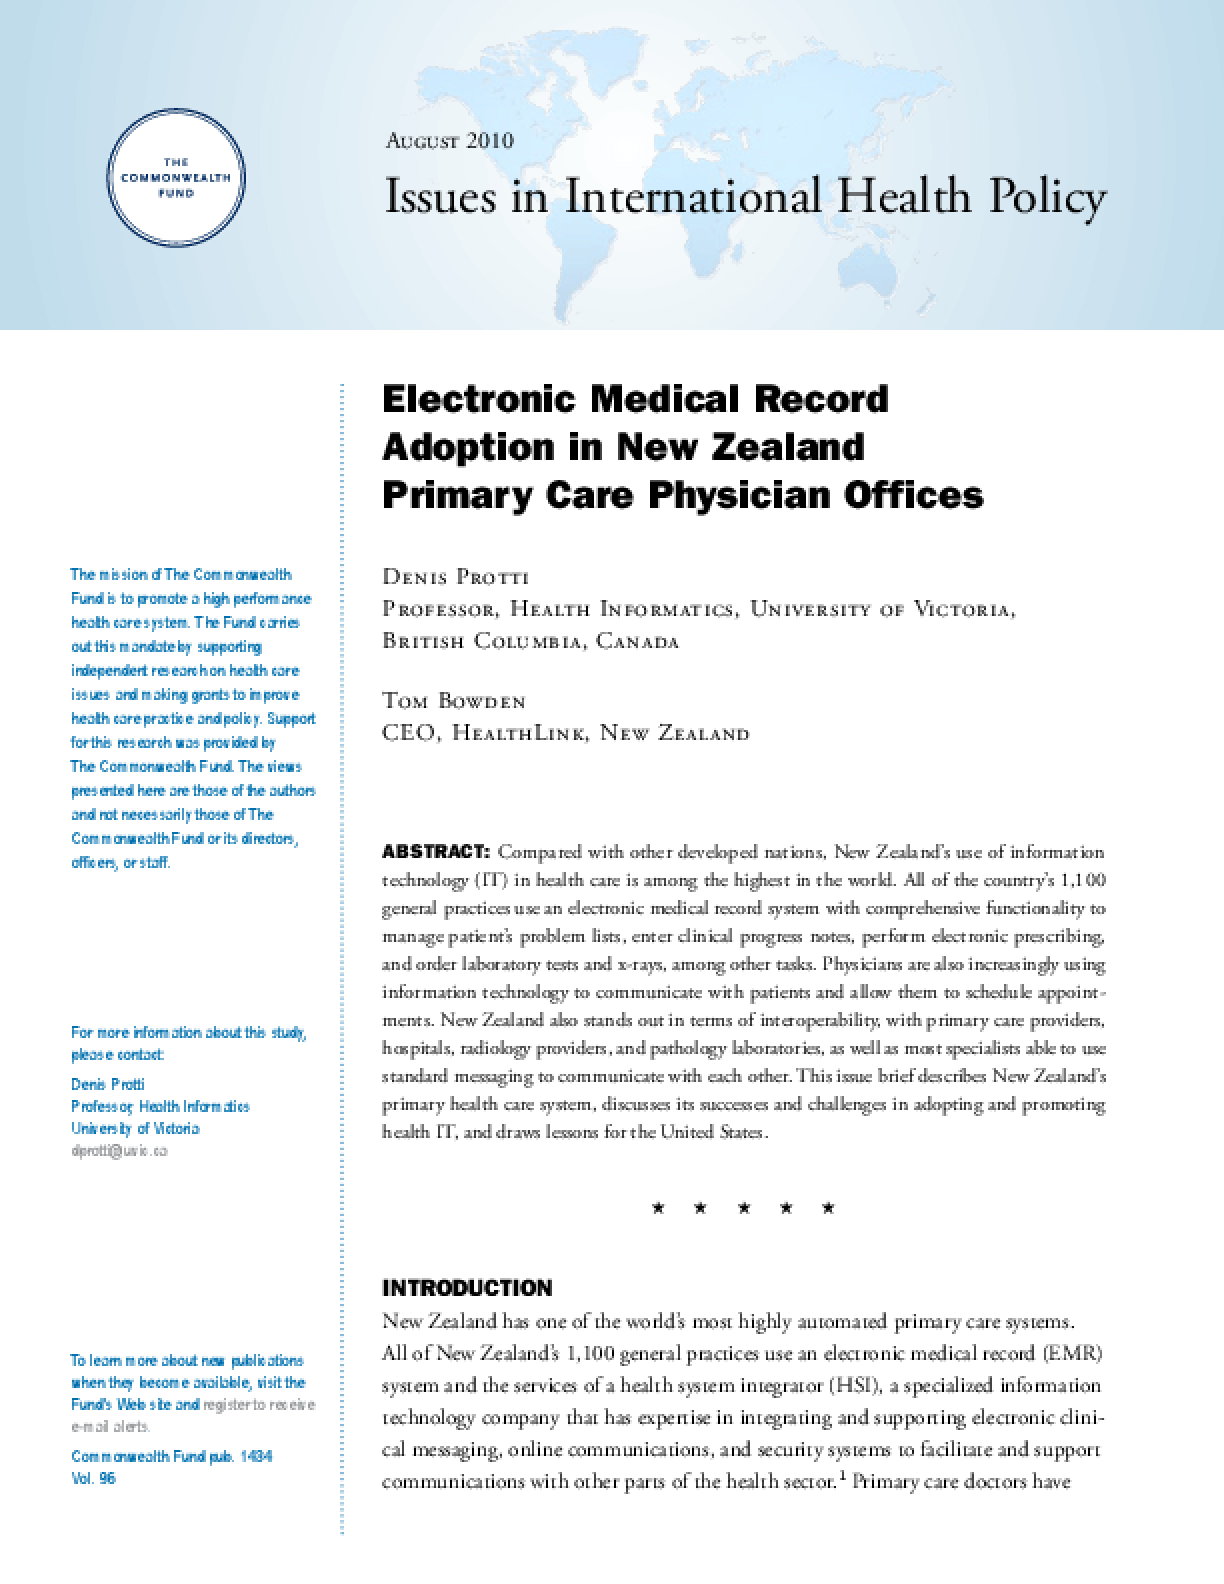 Electronic Medical Record Adoption in New Zealand Primary Care Physician Offices